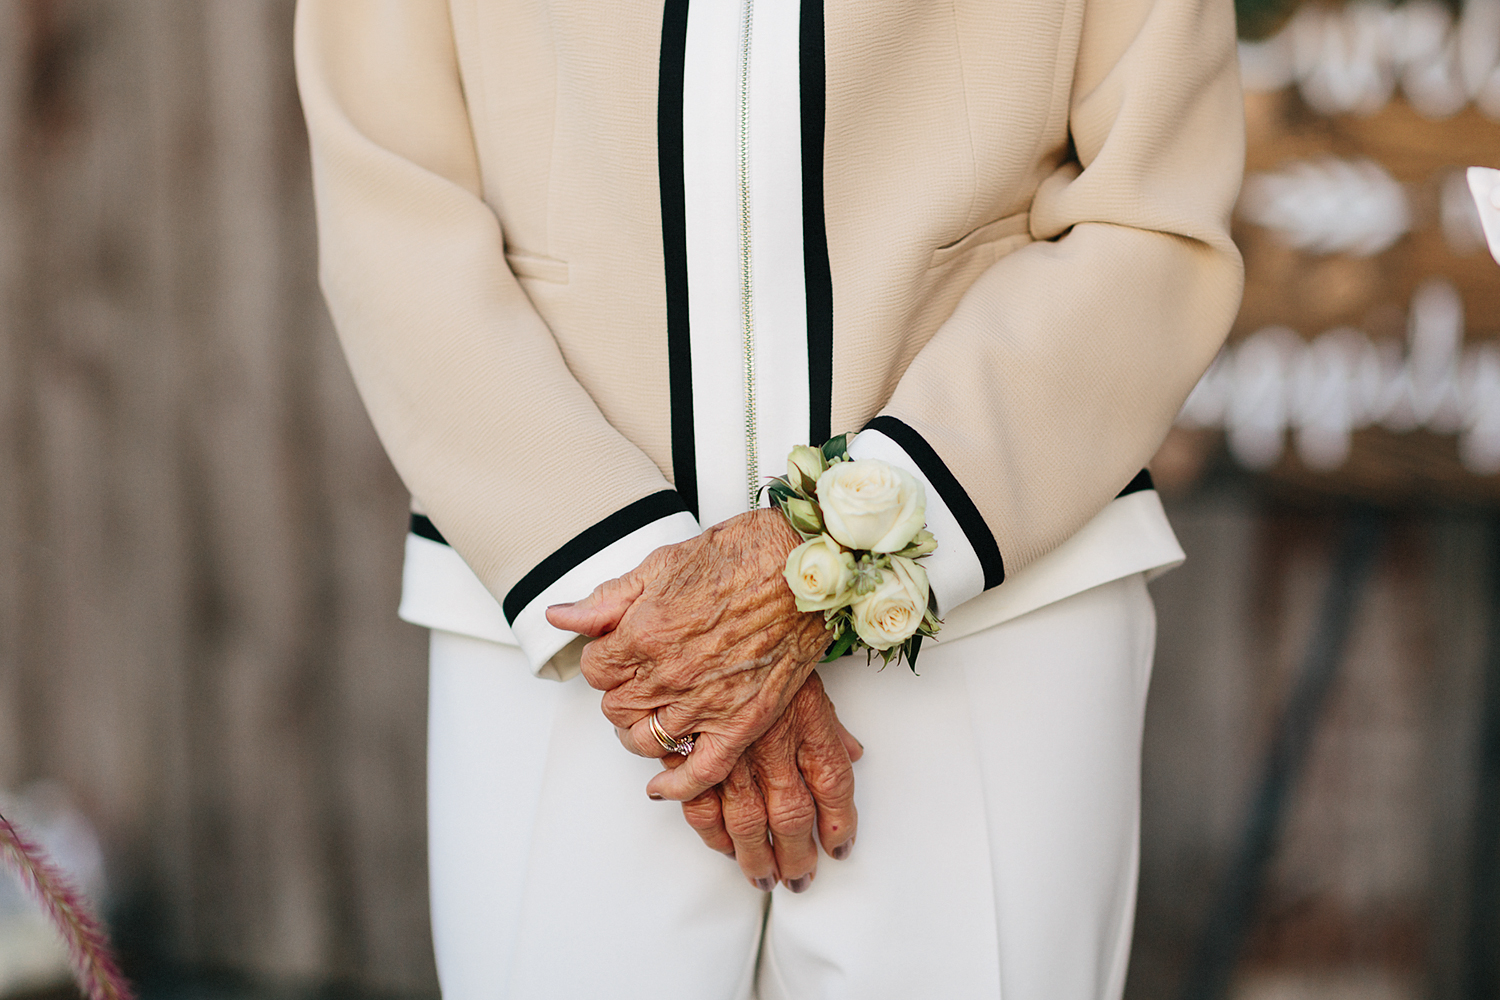 Photojournalistic-Wedding-Photographers-in-Toronto-Candid-Natural-Dowswell-Barn-Wedding-Rustic-GTA-Muskoka-Farm-details-grandma-as-flower-girl-corsage-details-white-flowers.jpg